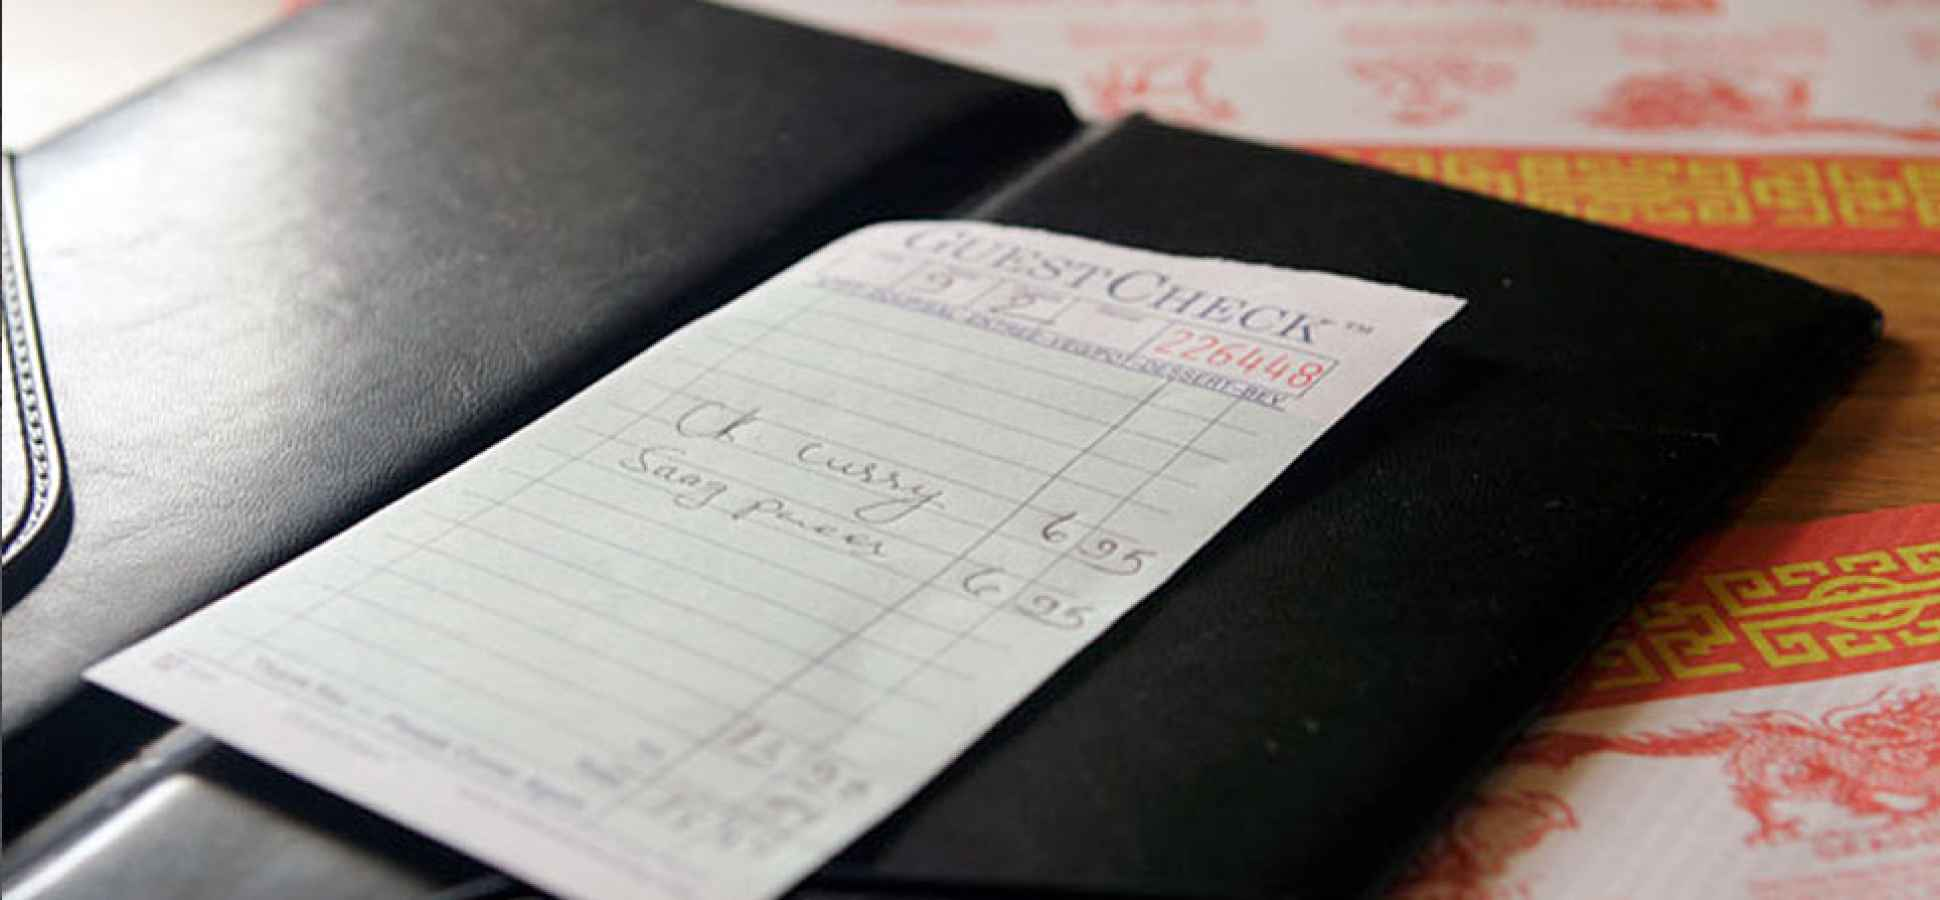 Business Etiquette: Who Should Pick Up the Check?